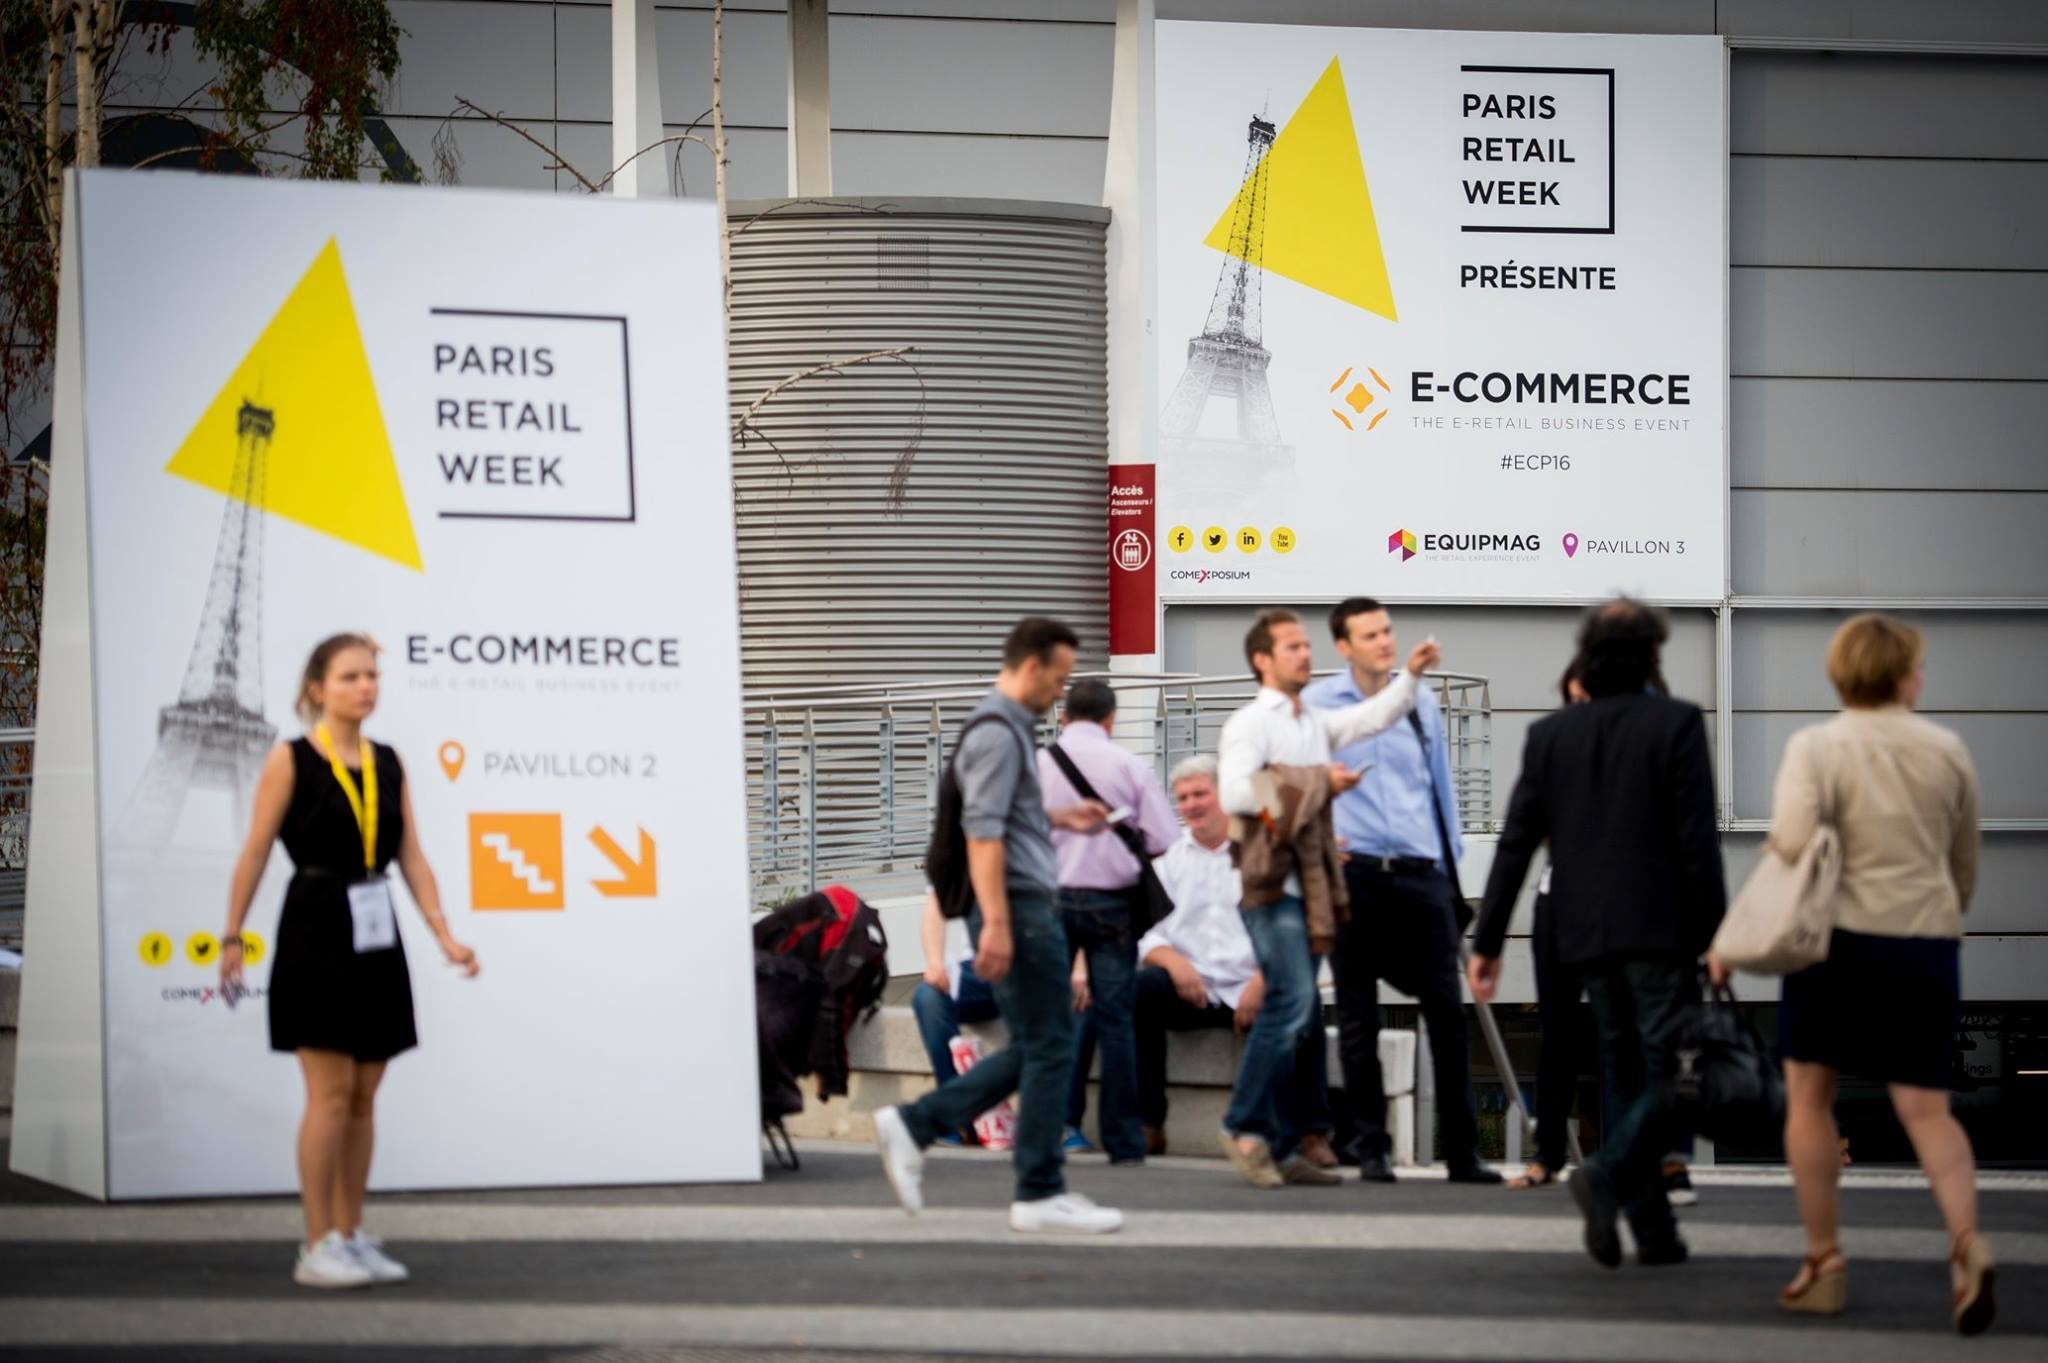 Salon Paris Septembre 2016 Le Salon E Commerce Paris Du 12 Au 16 Septembre 2016 Le